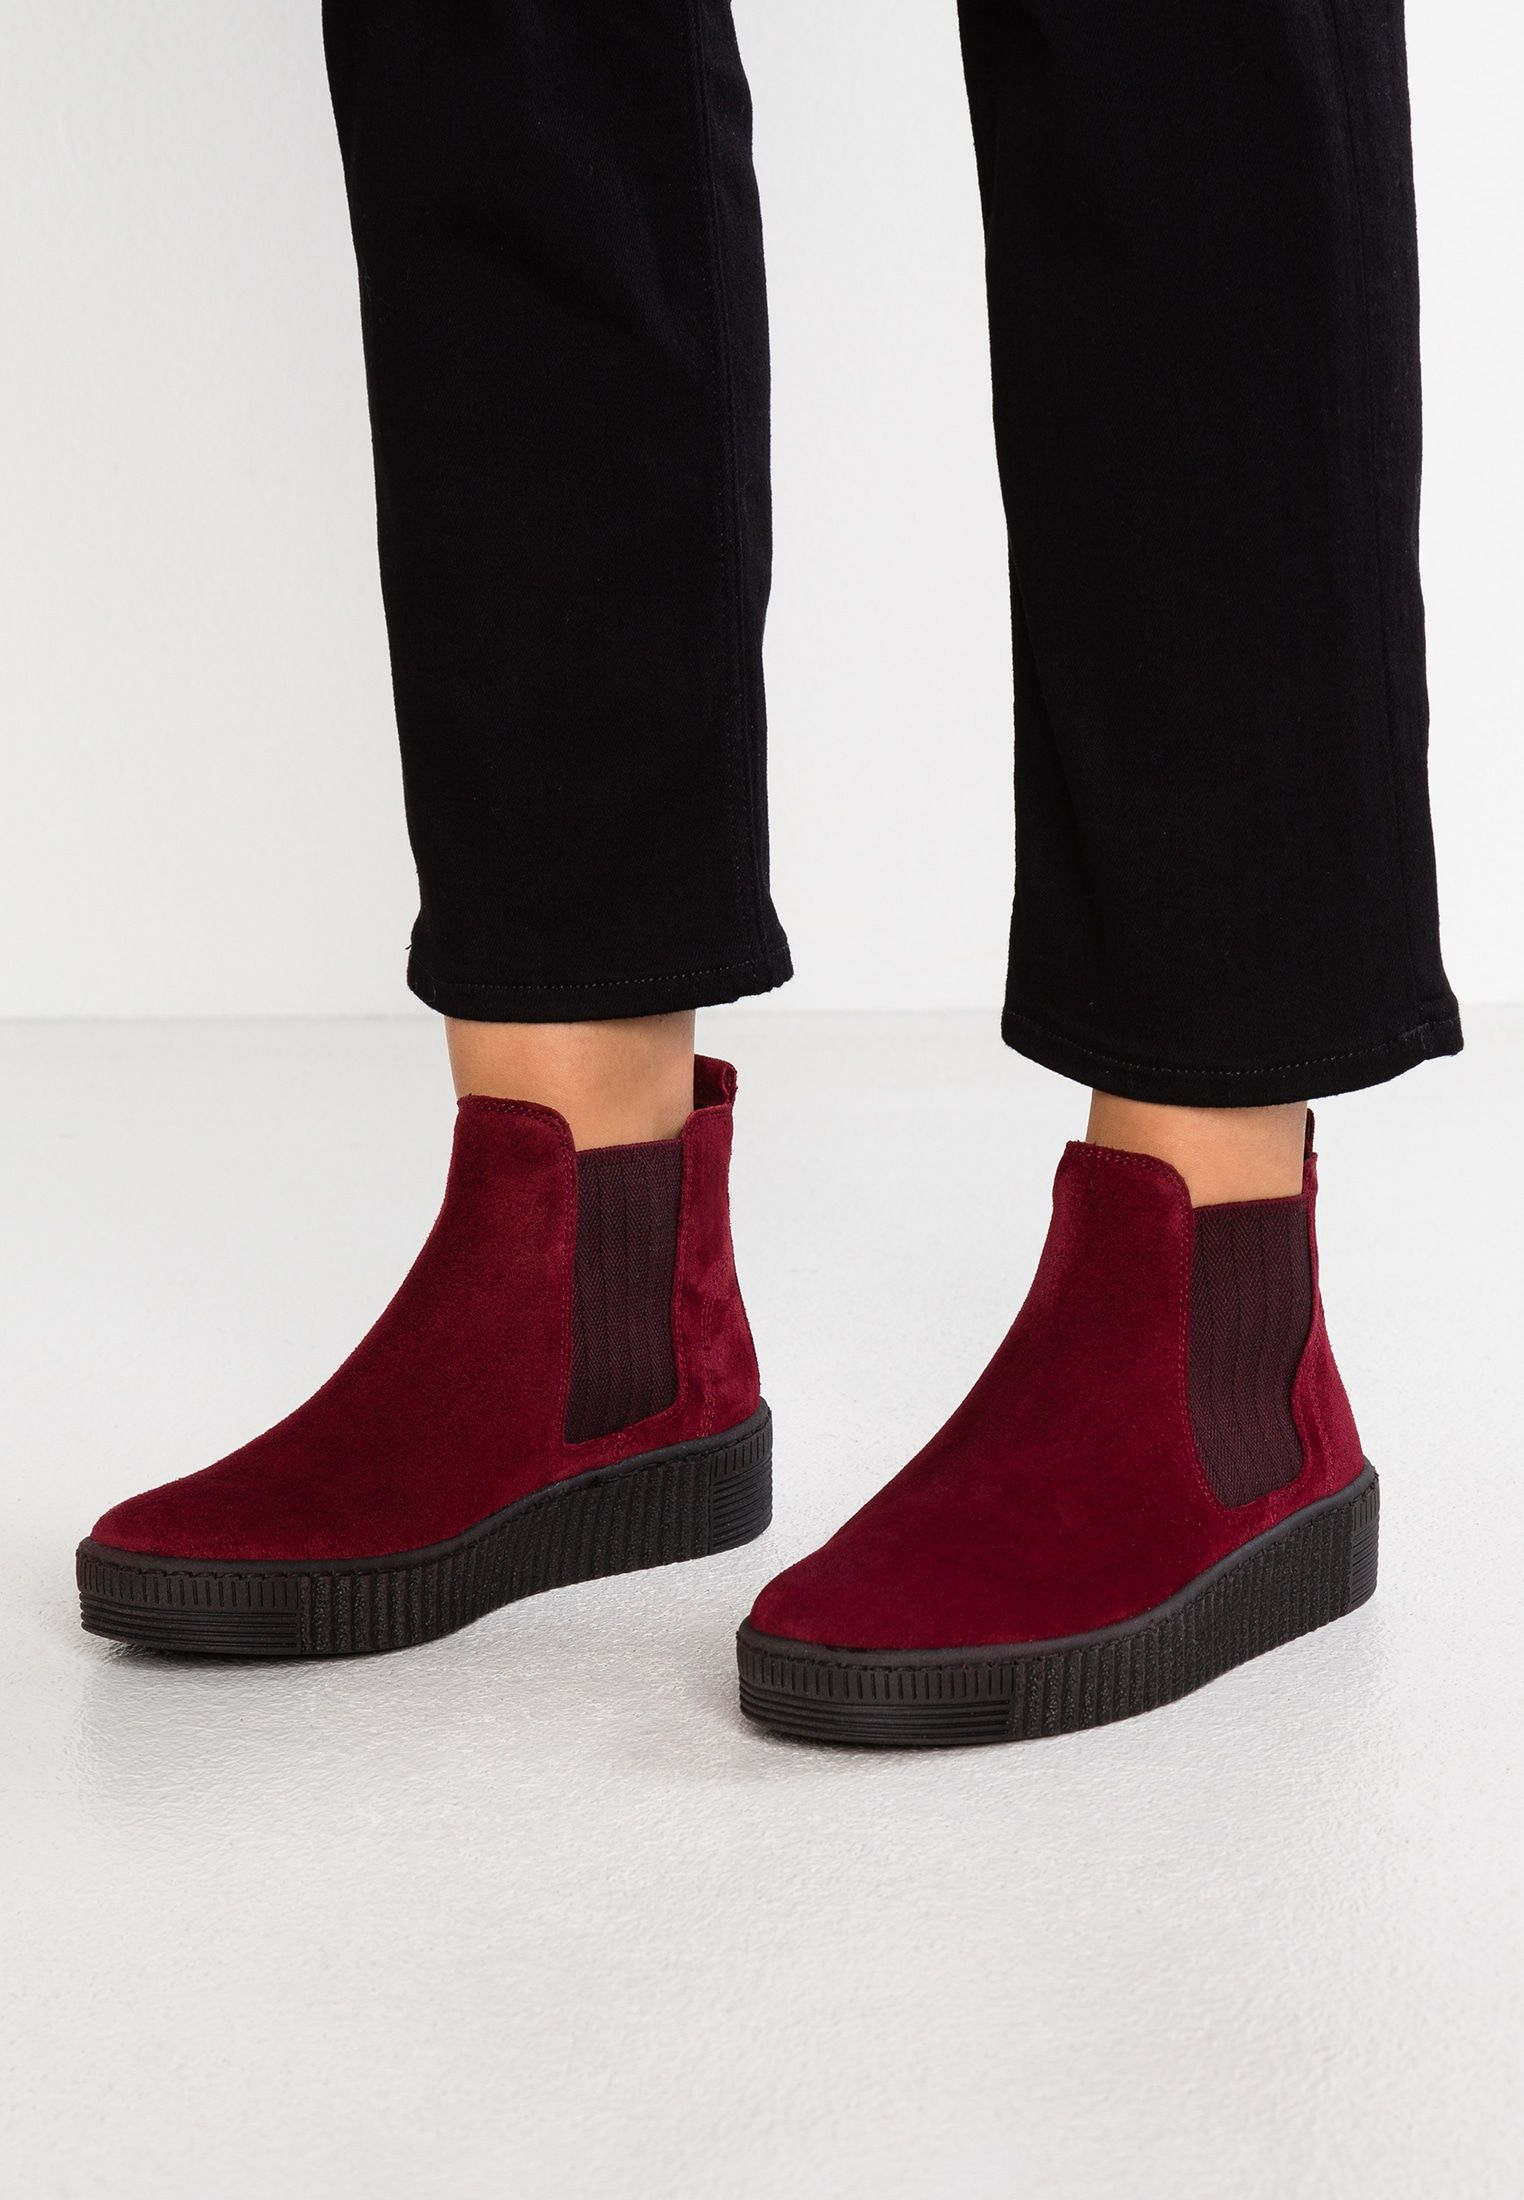 Gabor Ankle Boot Camino Zalando Pl Gabor Ankle Boots Ankle Boot Shoes